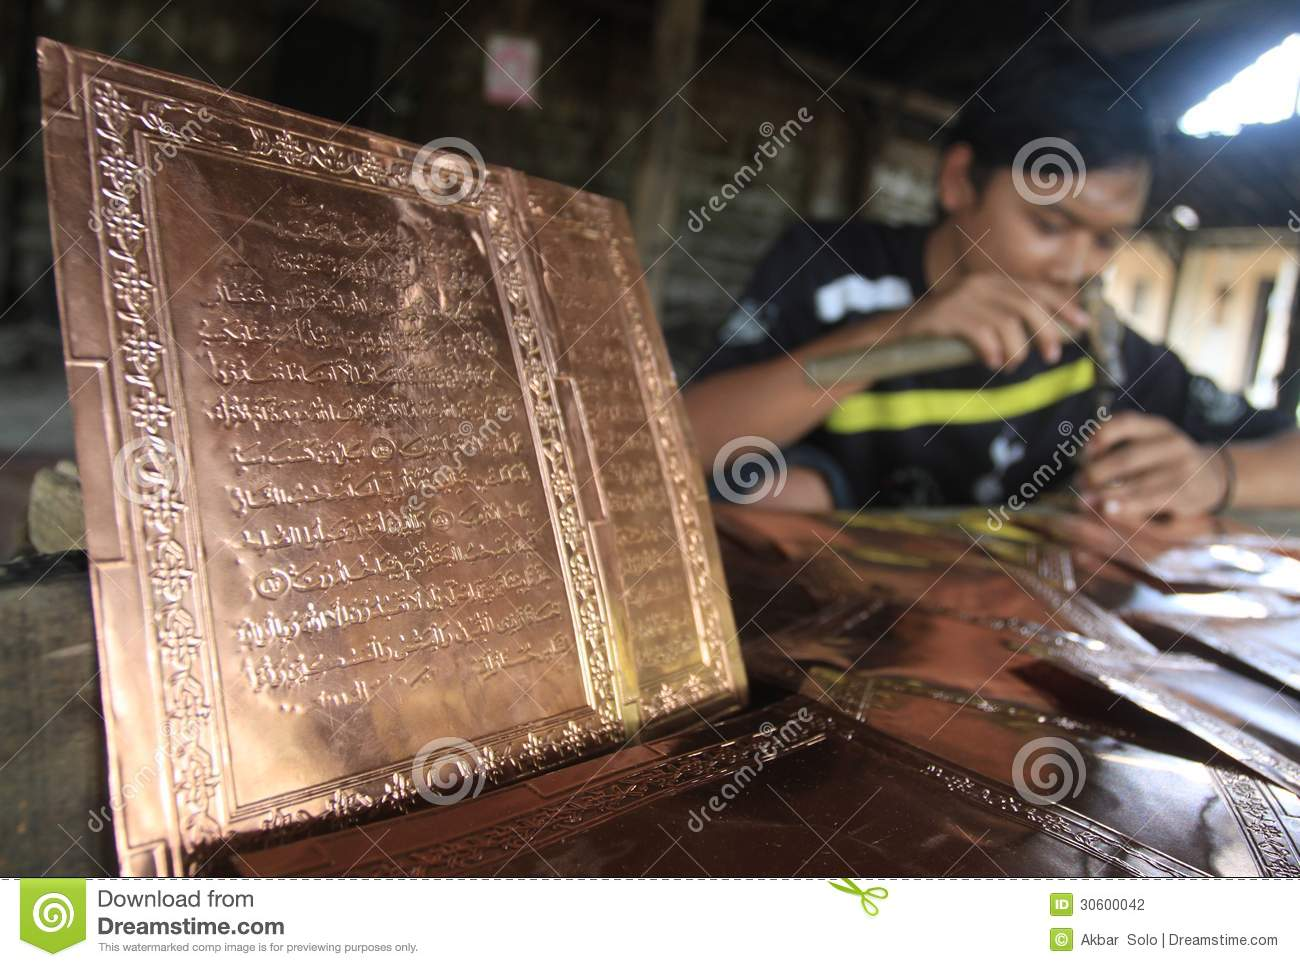 Boyolali Indonesia  city pictures gallery : Worker making koran Quran from Brass in Boyolali, Indonesia.